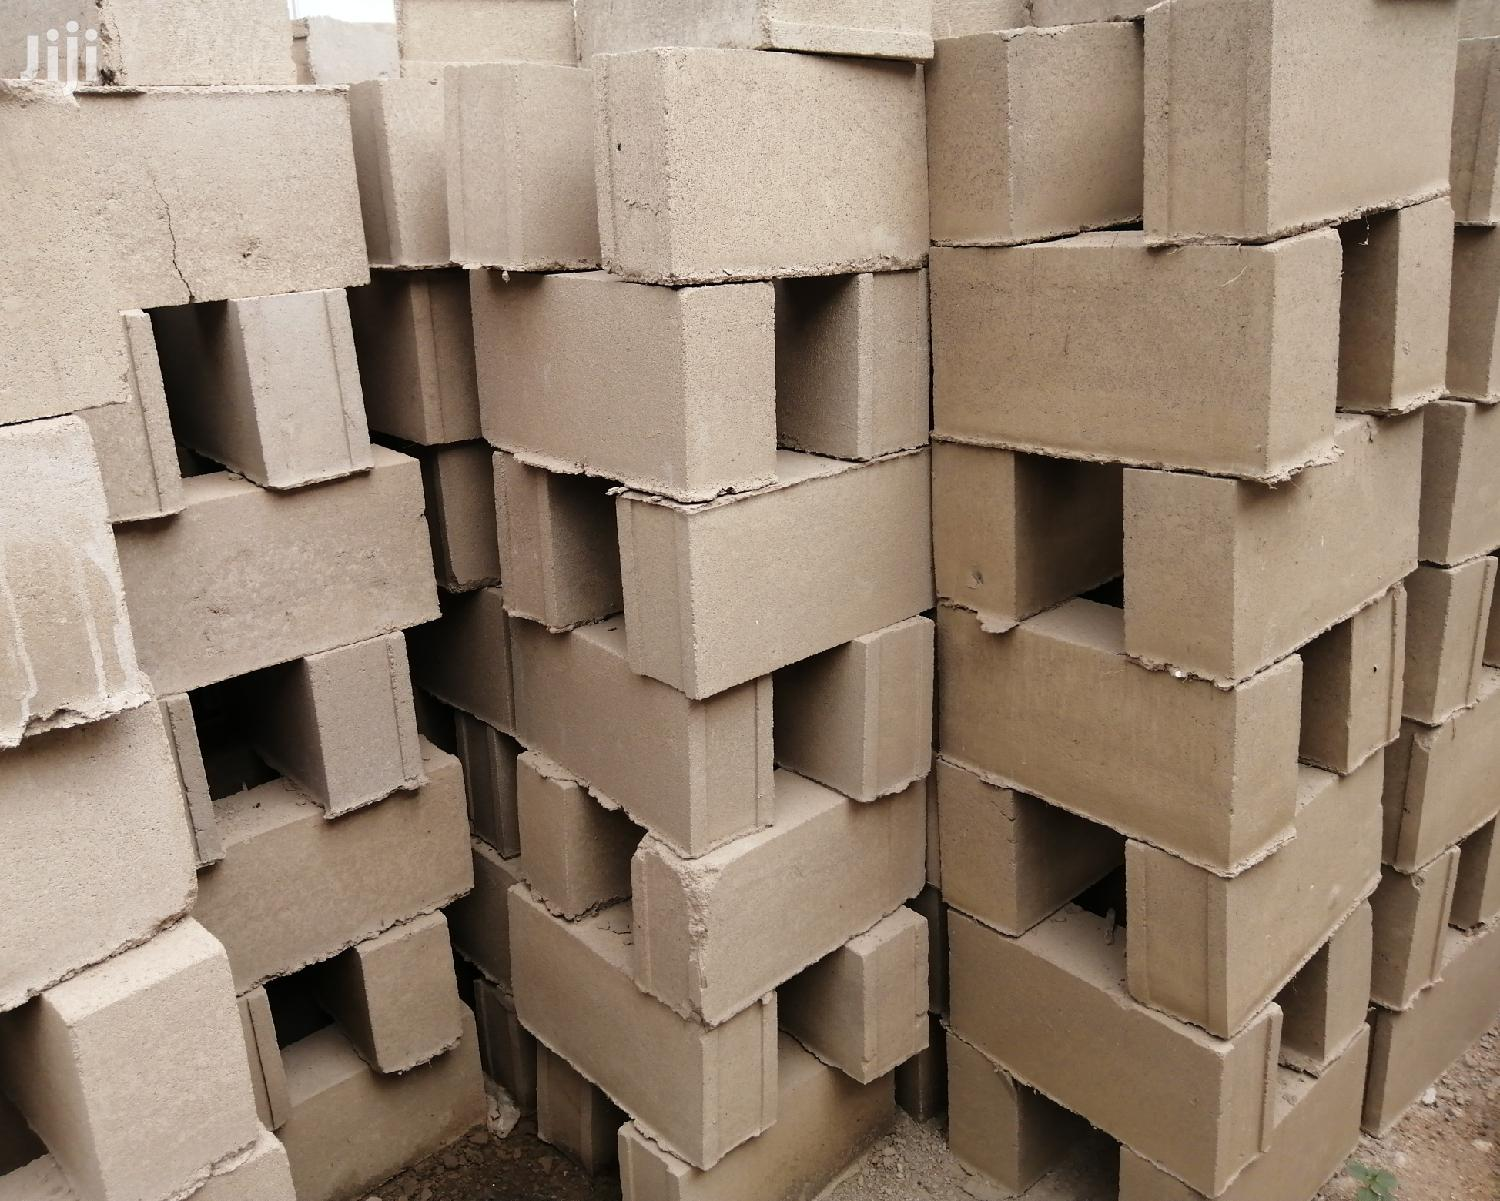 Quality 5 Inches Sand Solid Blocks Gh¢ 2.50